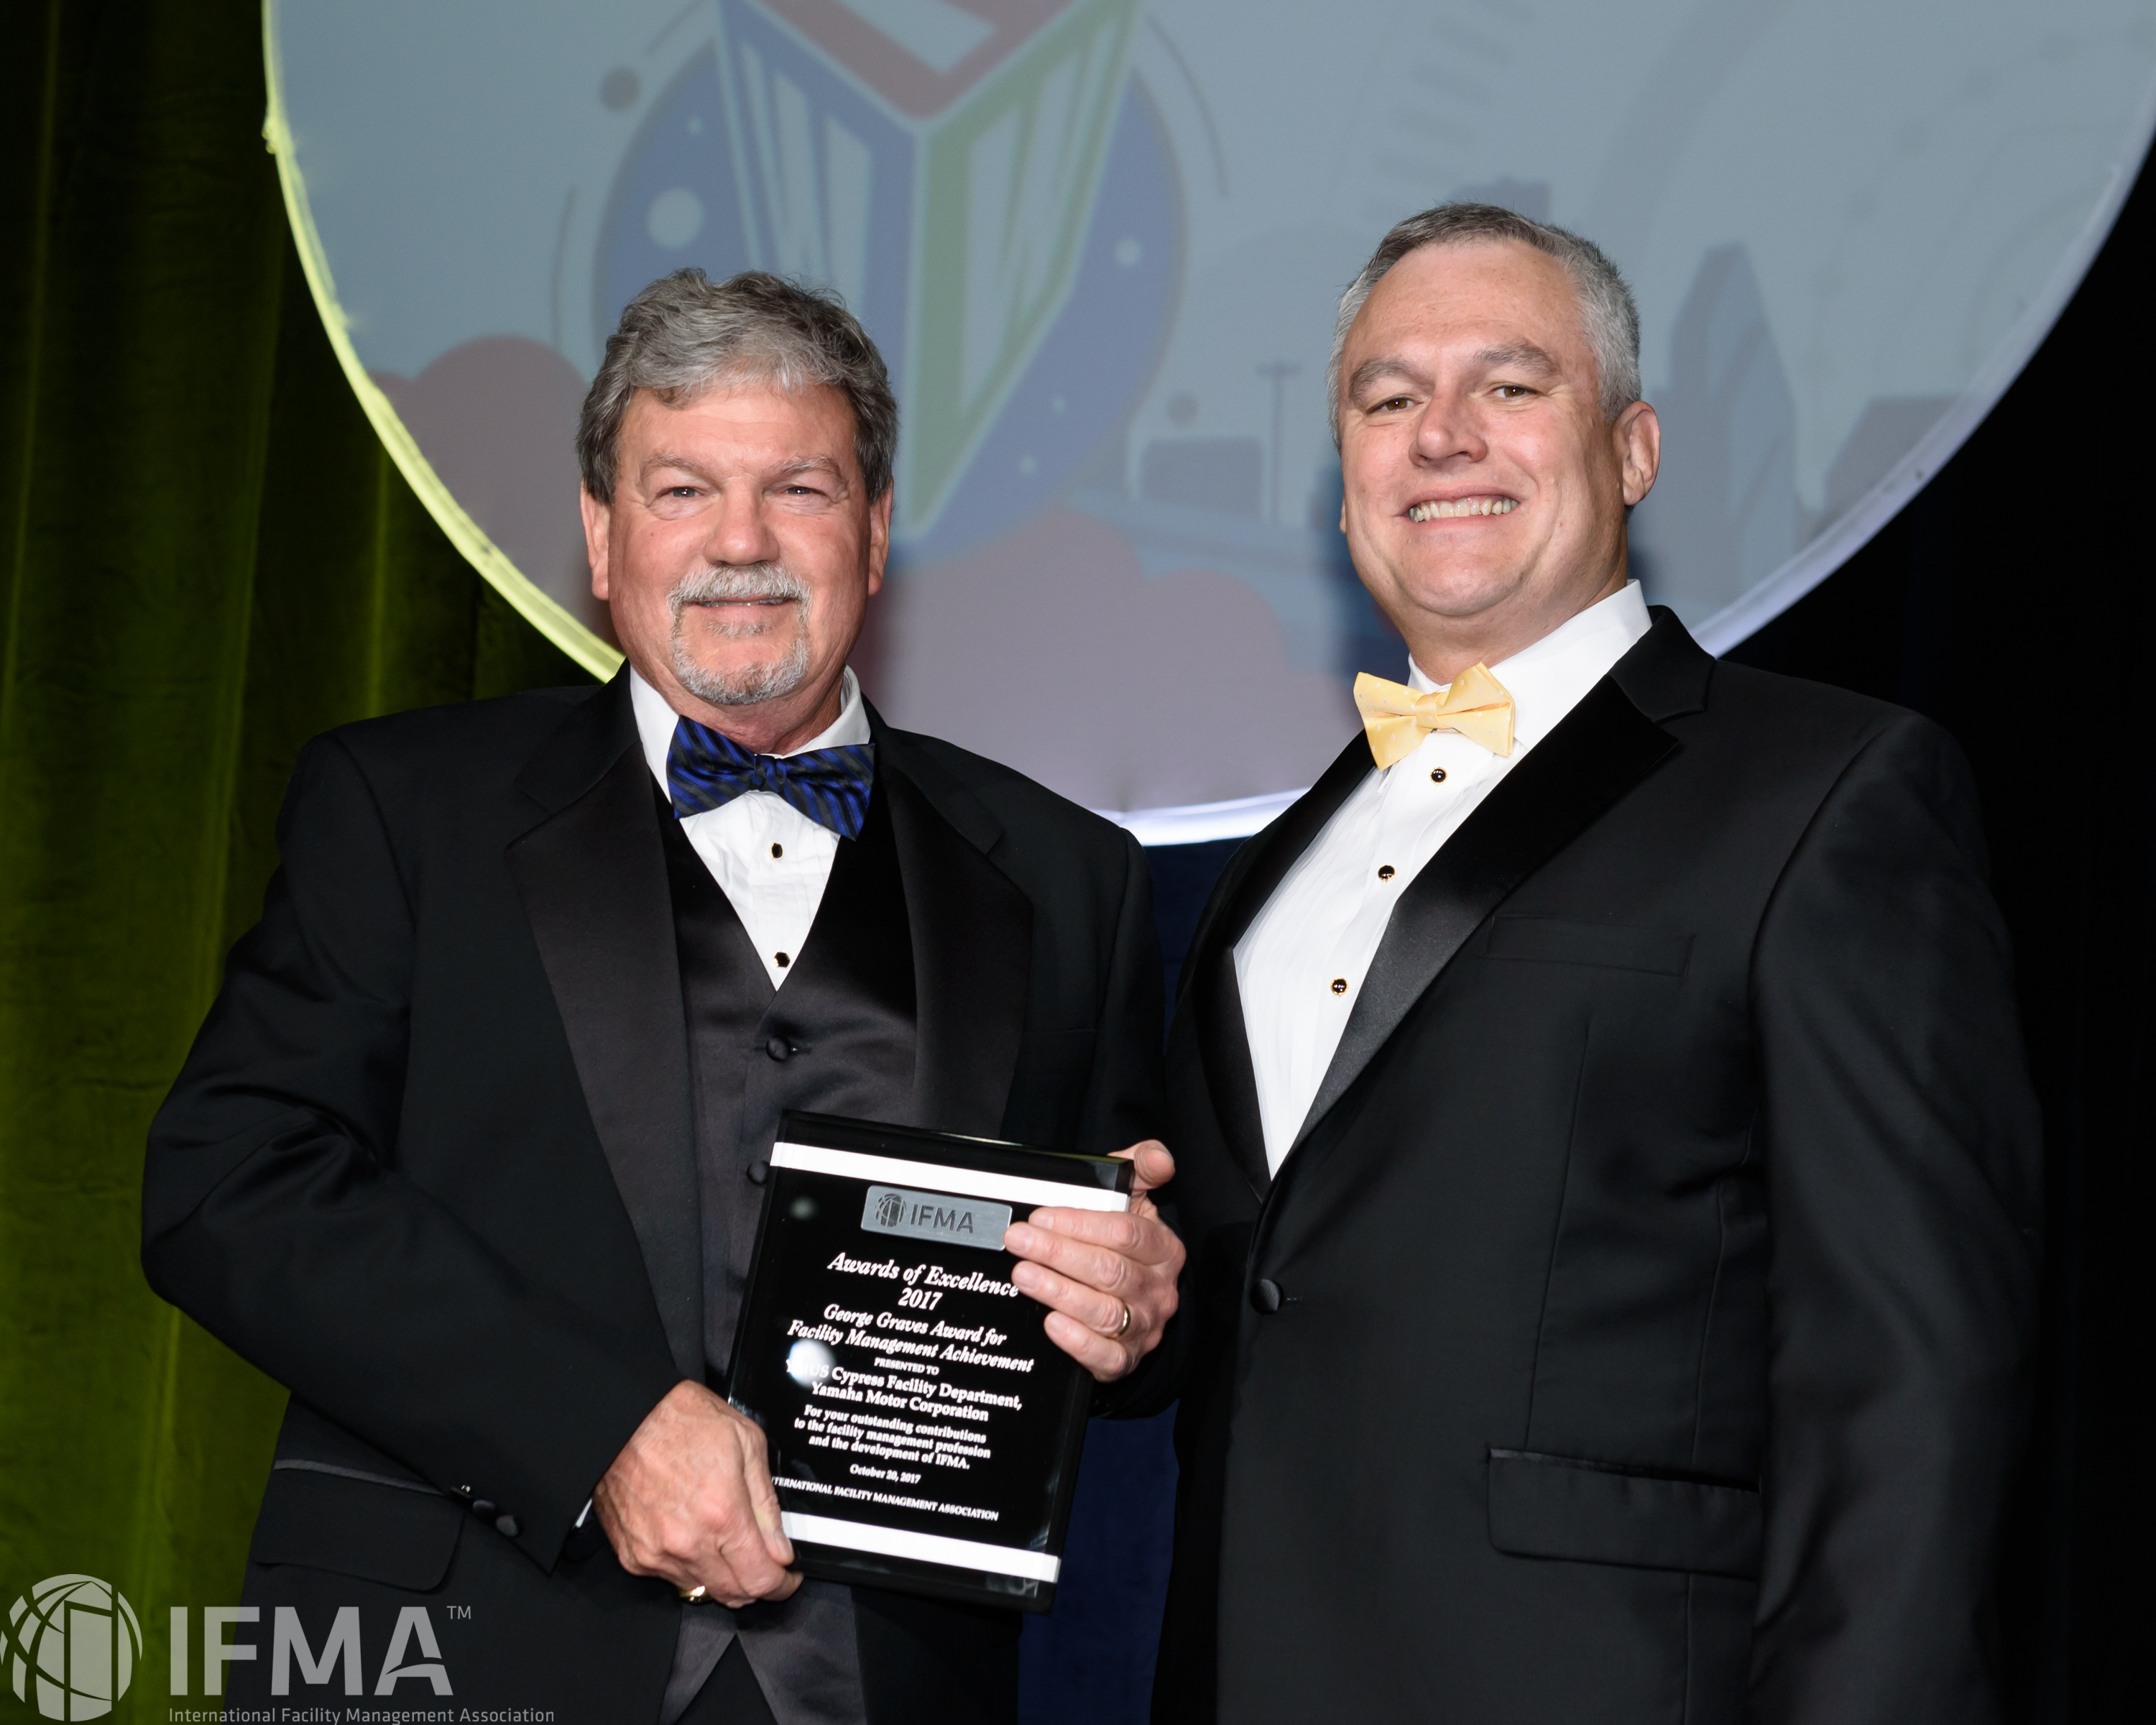 YMUS Cypress Facility Department, Yamaha Motor Corporation receives The George Graves Award for Facility Management Achievement